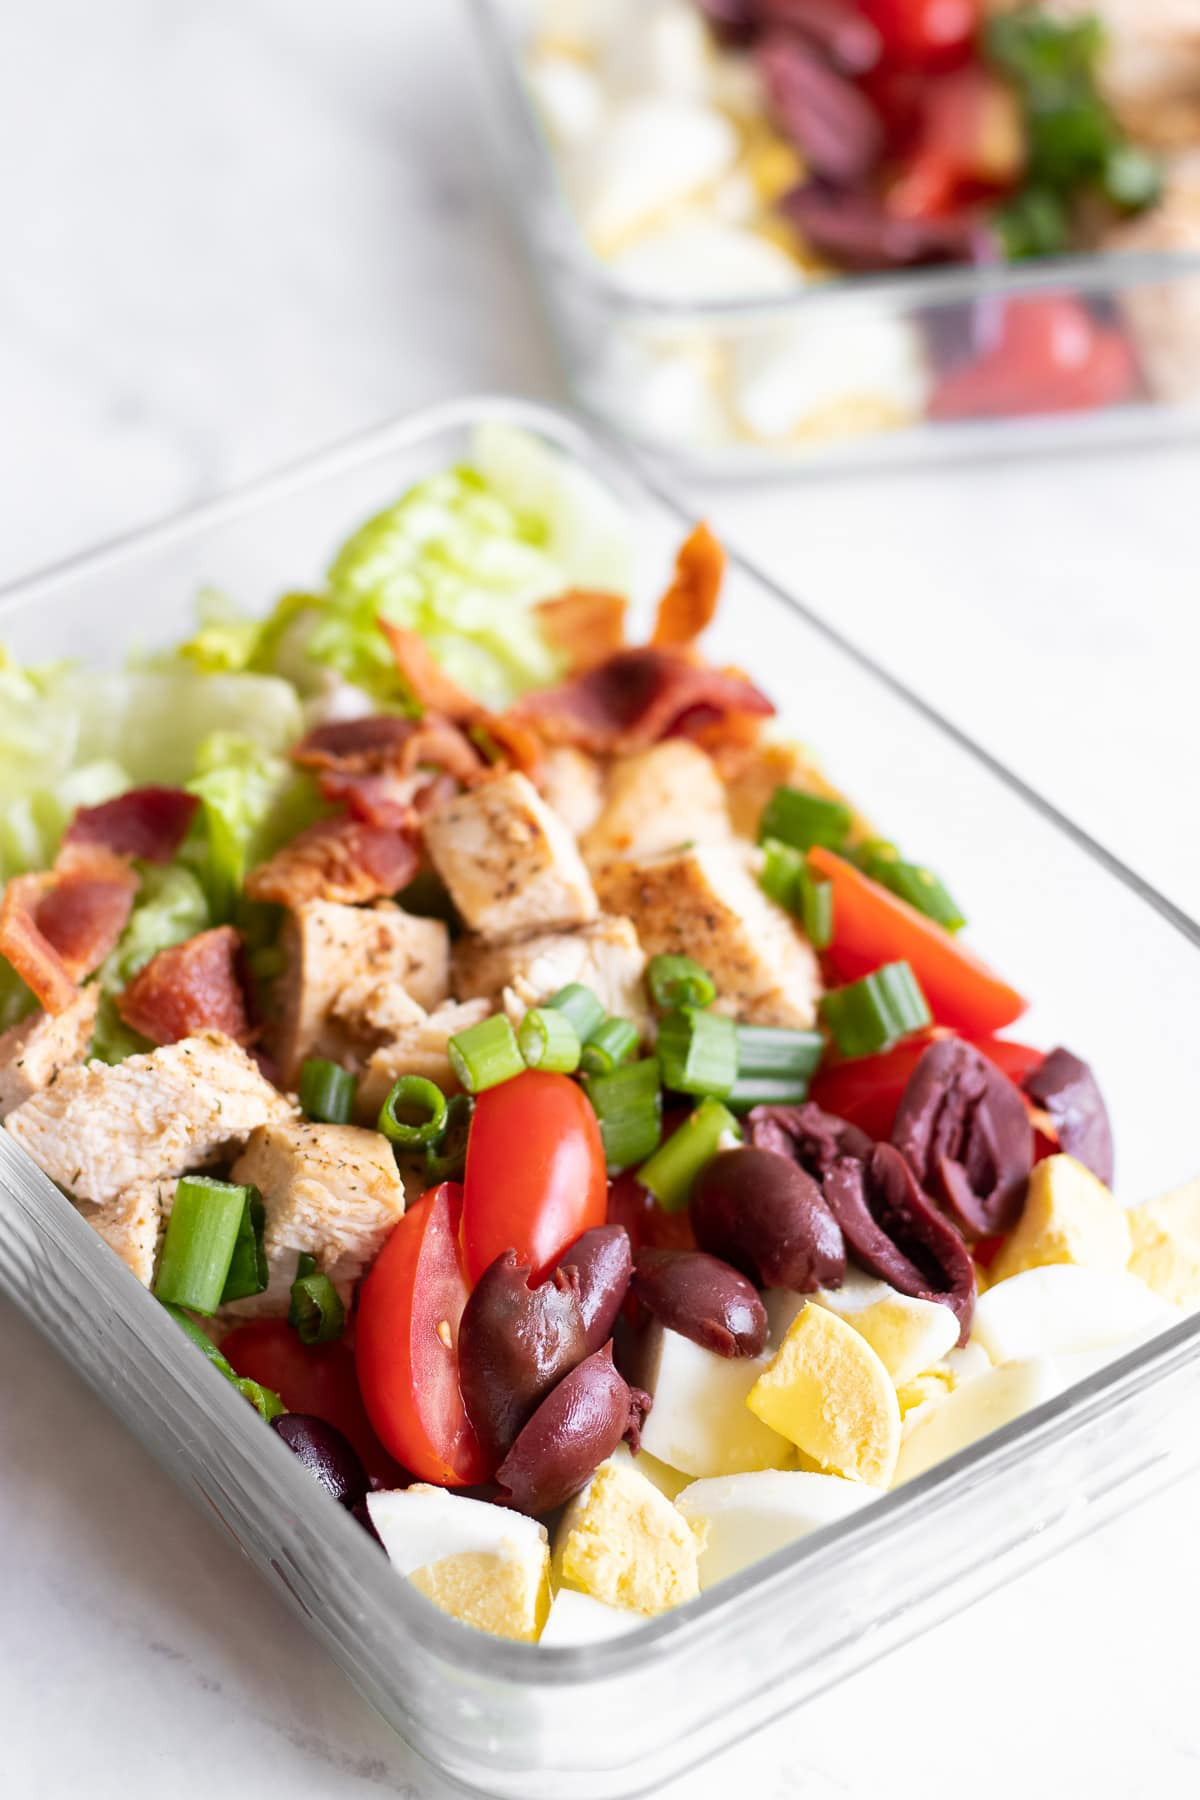 A clear reusable glass container filled with Low FODMAP Cobb Salad.